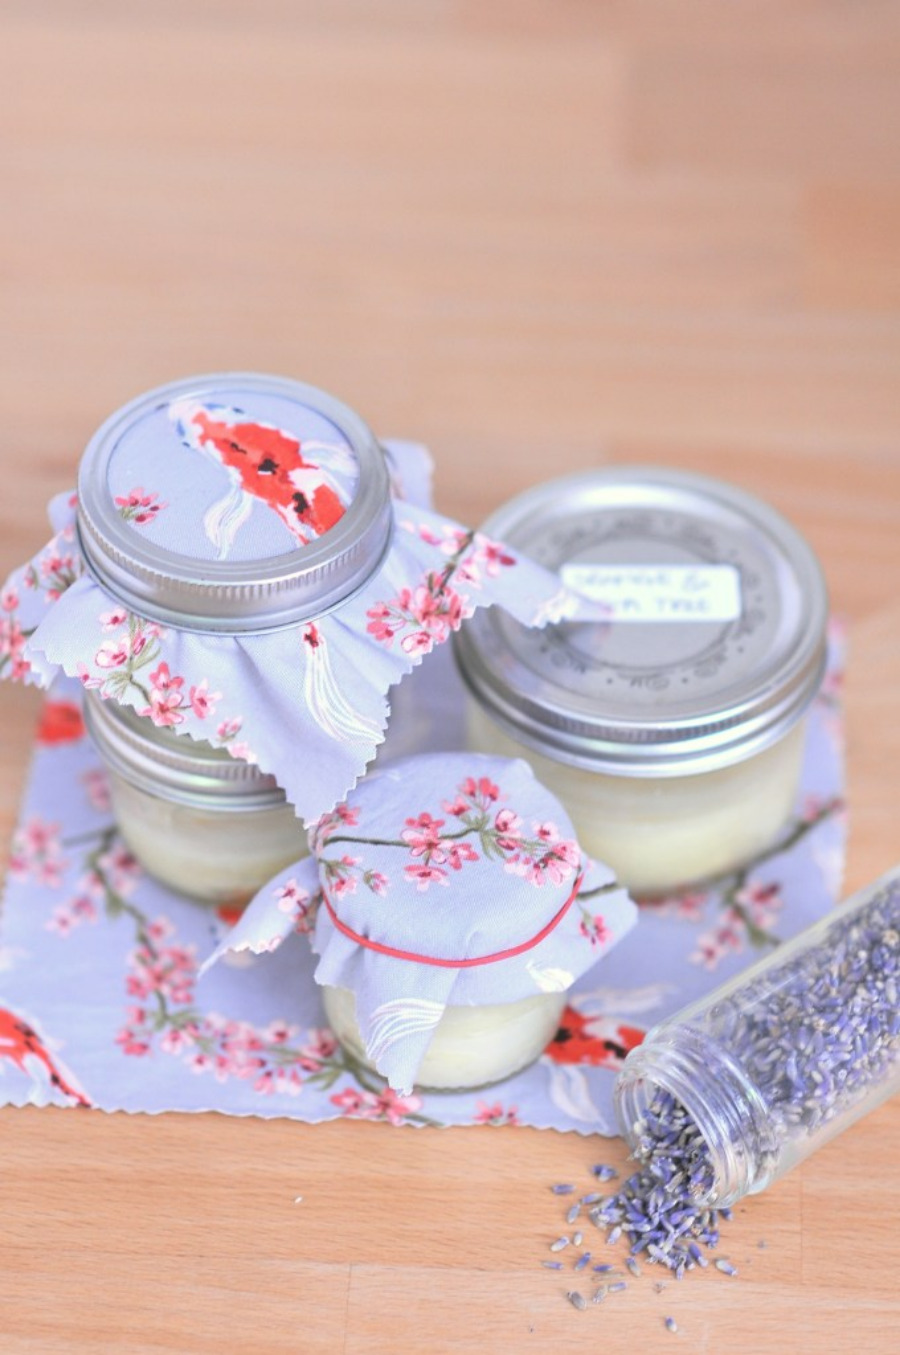 Make Your Own Lanolin Body Balm